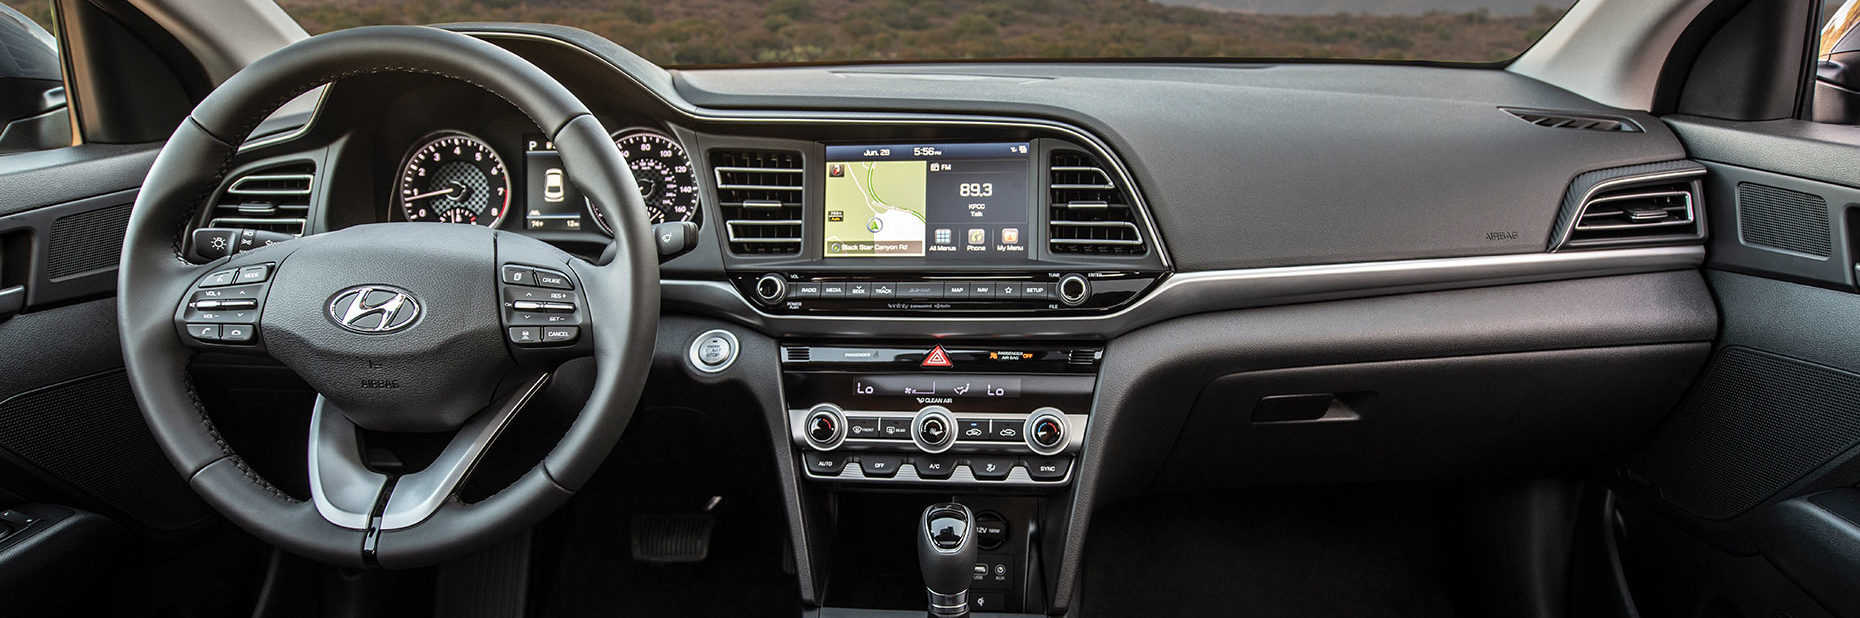 Front interior shot of Hyundai Elantra featuring steering wheel and dashboard